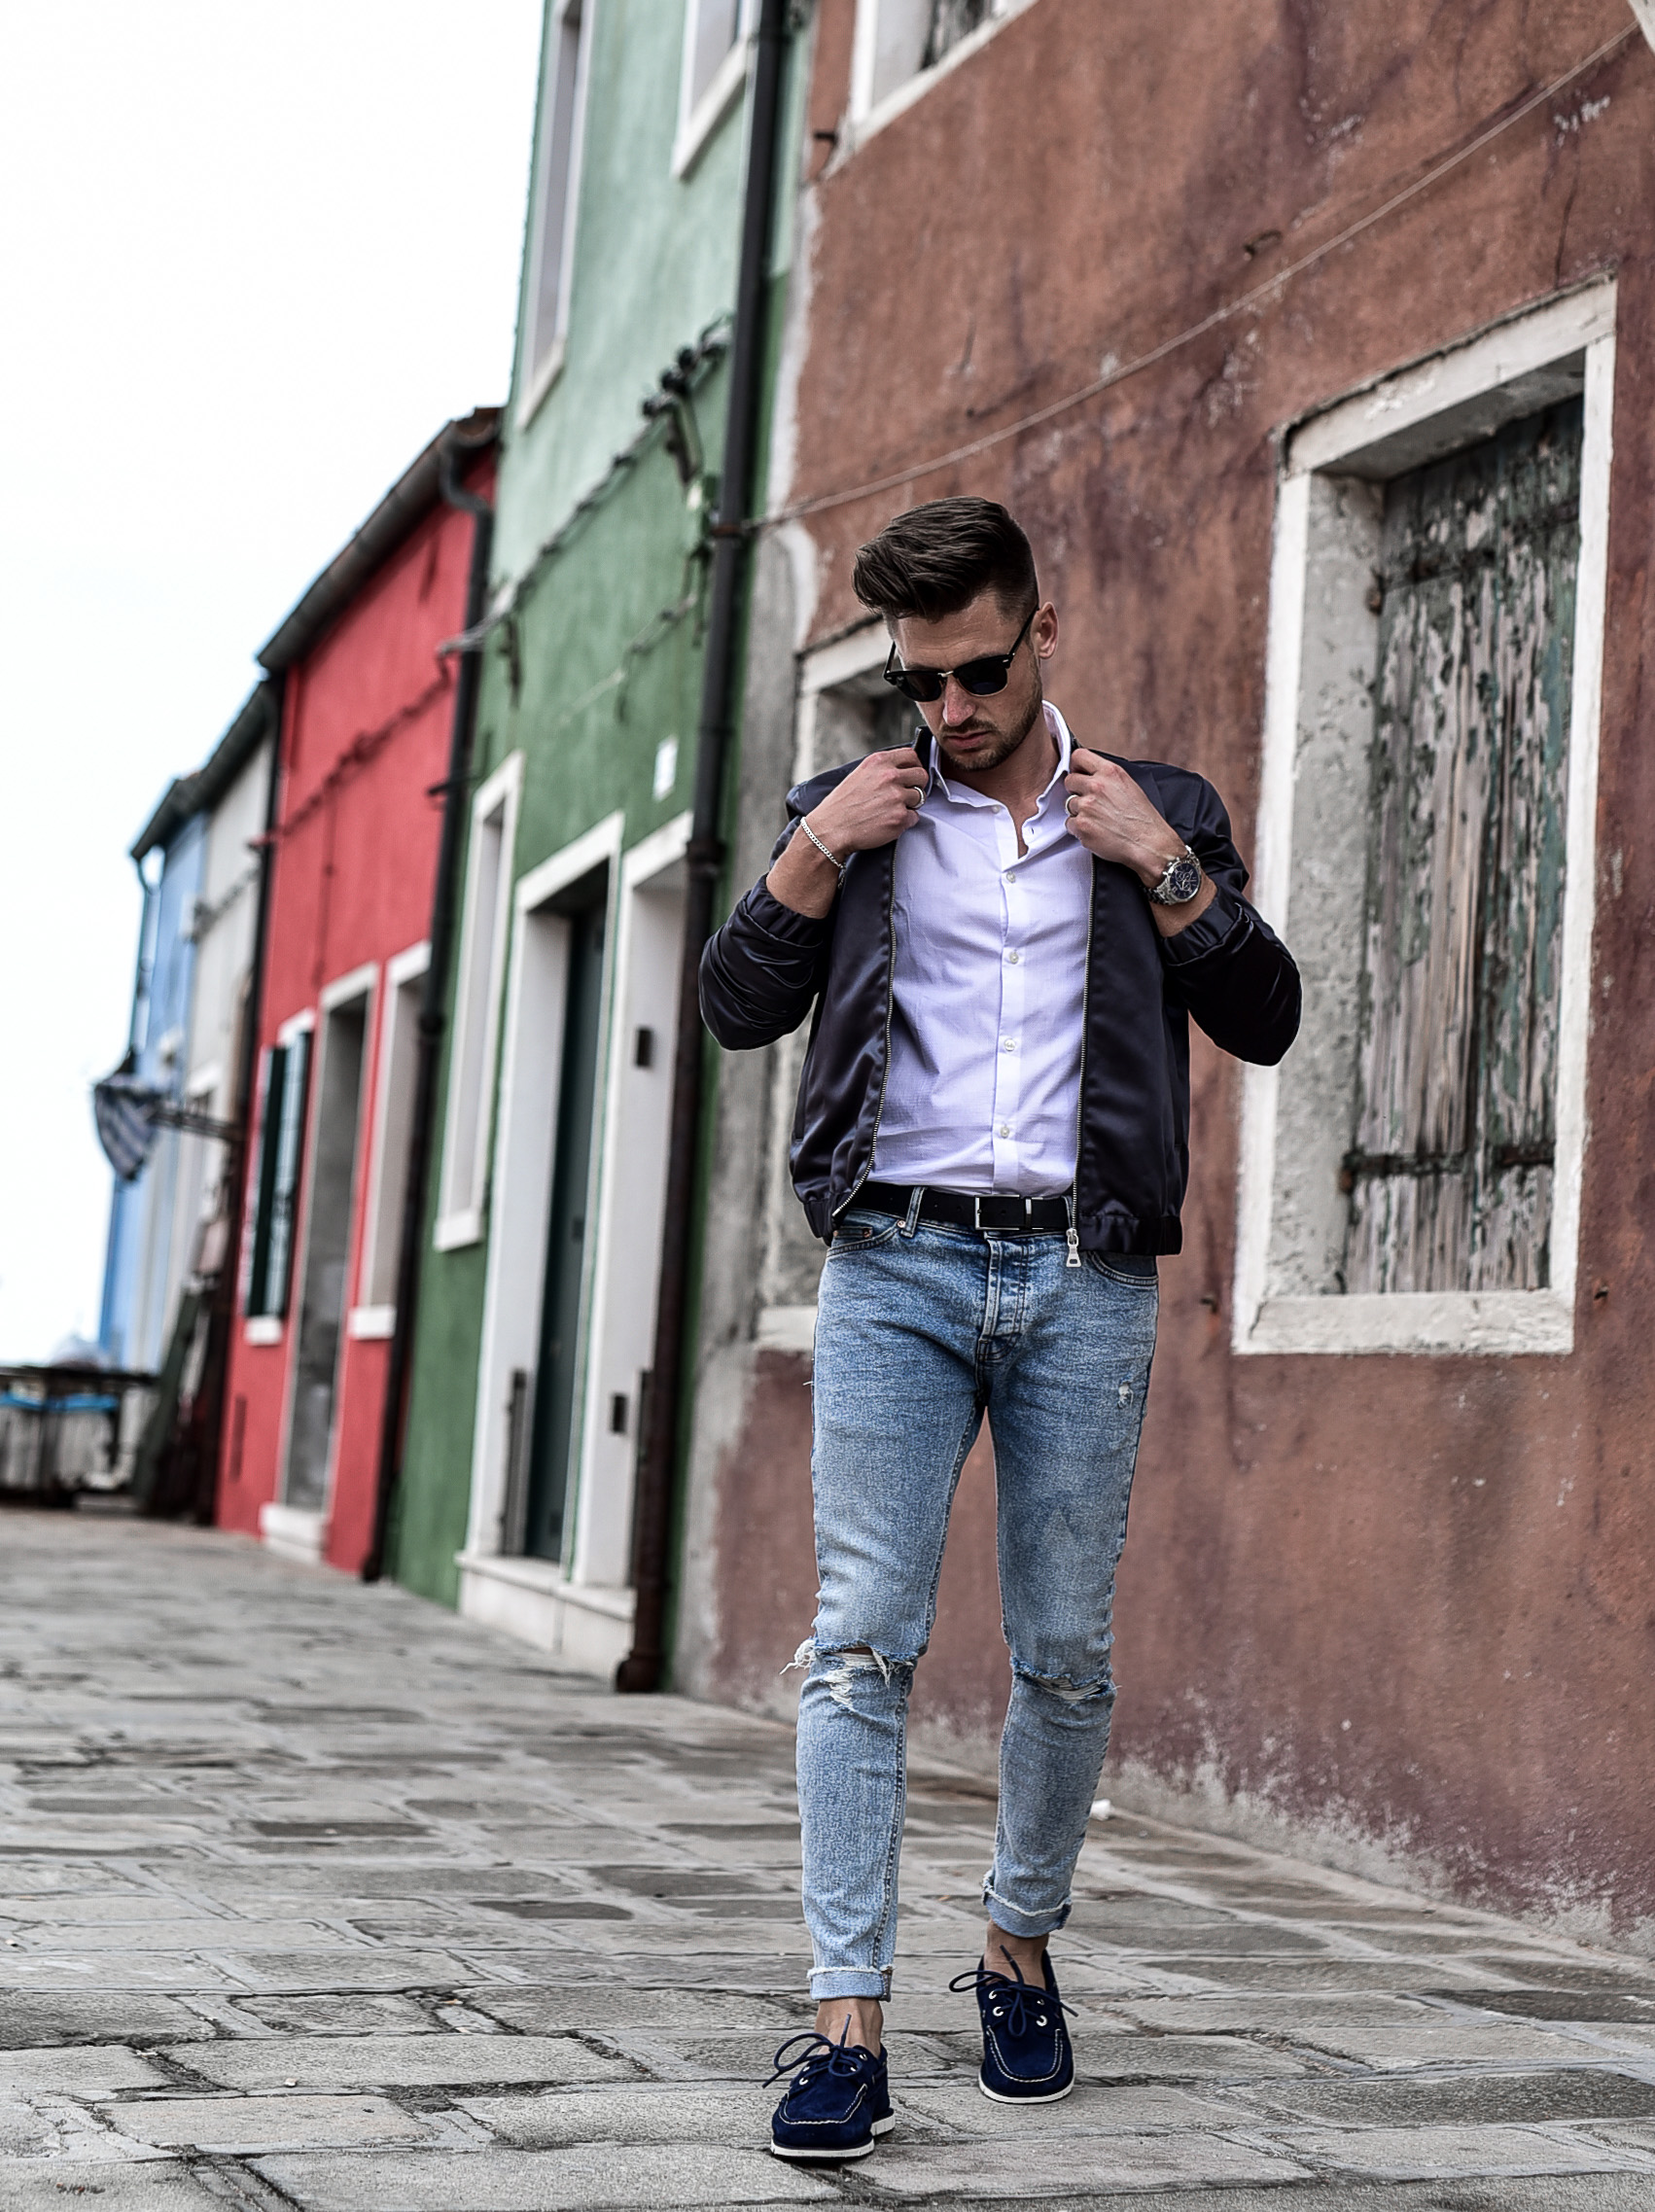 Tommeezjerry-Maennermodeblog-Maennermode-Fashionblog-Styleblog-Berlinblog-Mensblog-Timberland-Boatshoes-Venice-London-Casual-Chick-Streetstyle-Gentlemenstyle